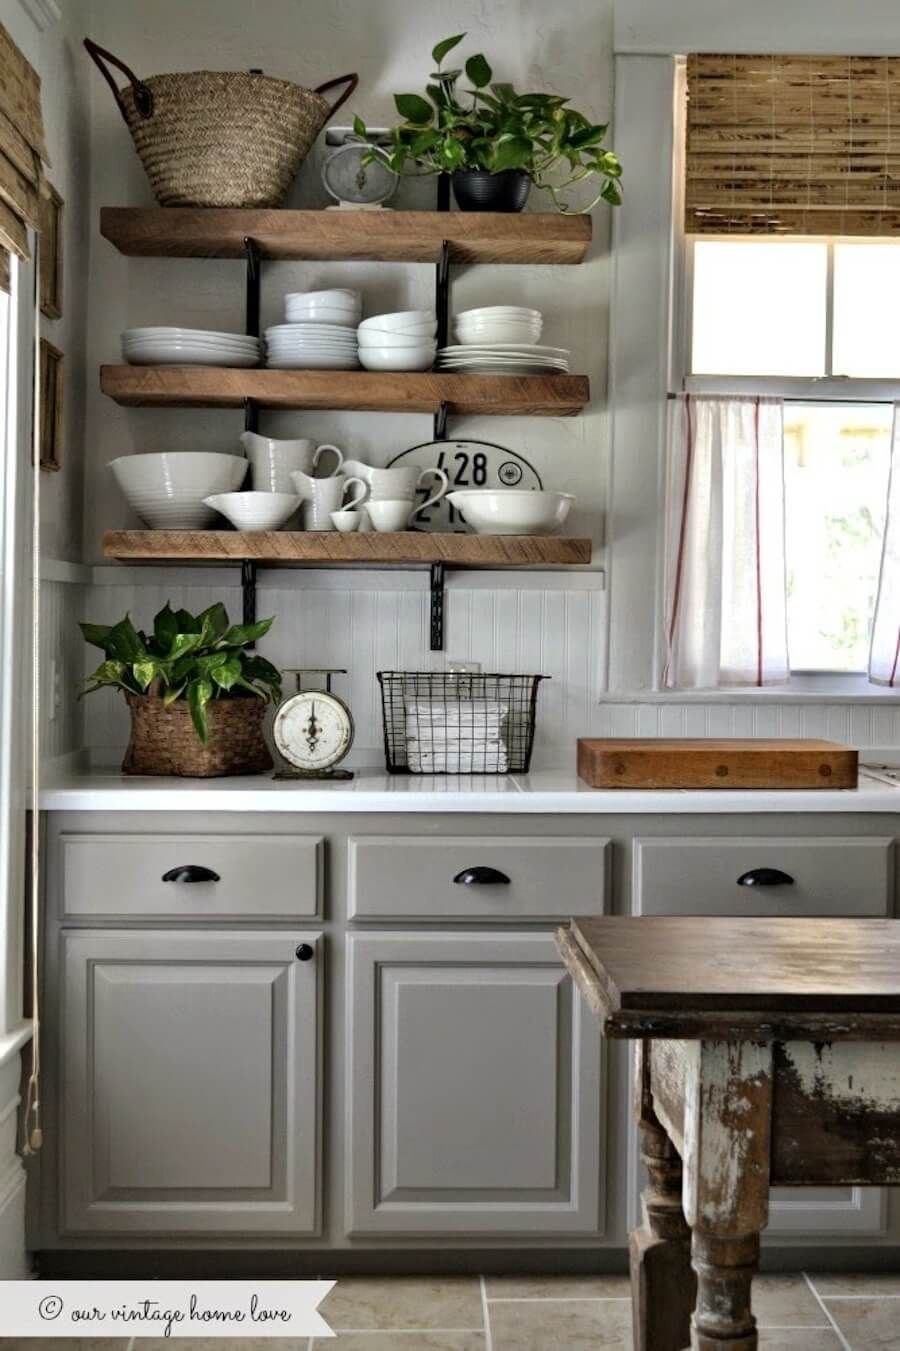 23 Delightful Cottage Kitchen Design And Decorating Ideas That Will Add  Charm To Your Home